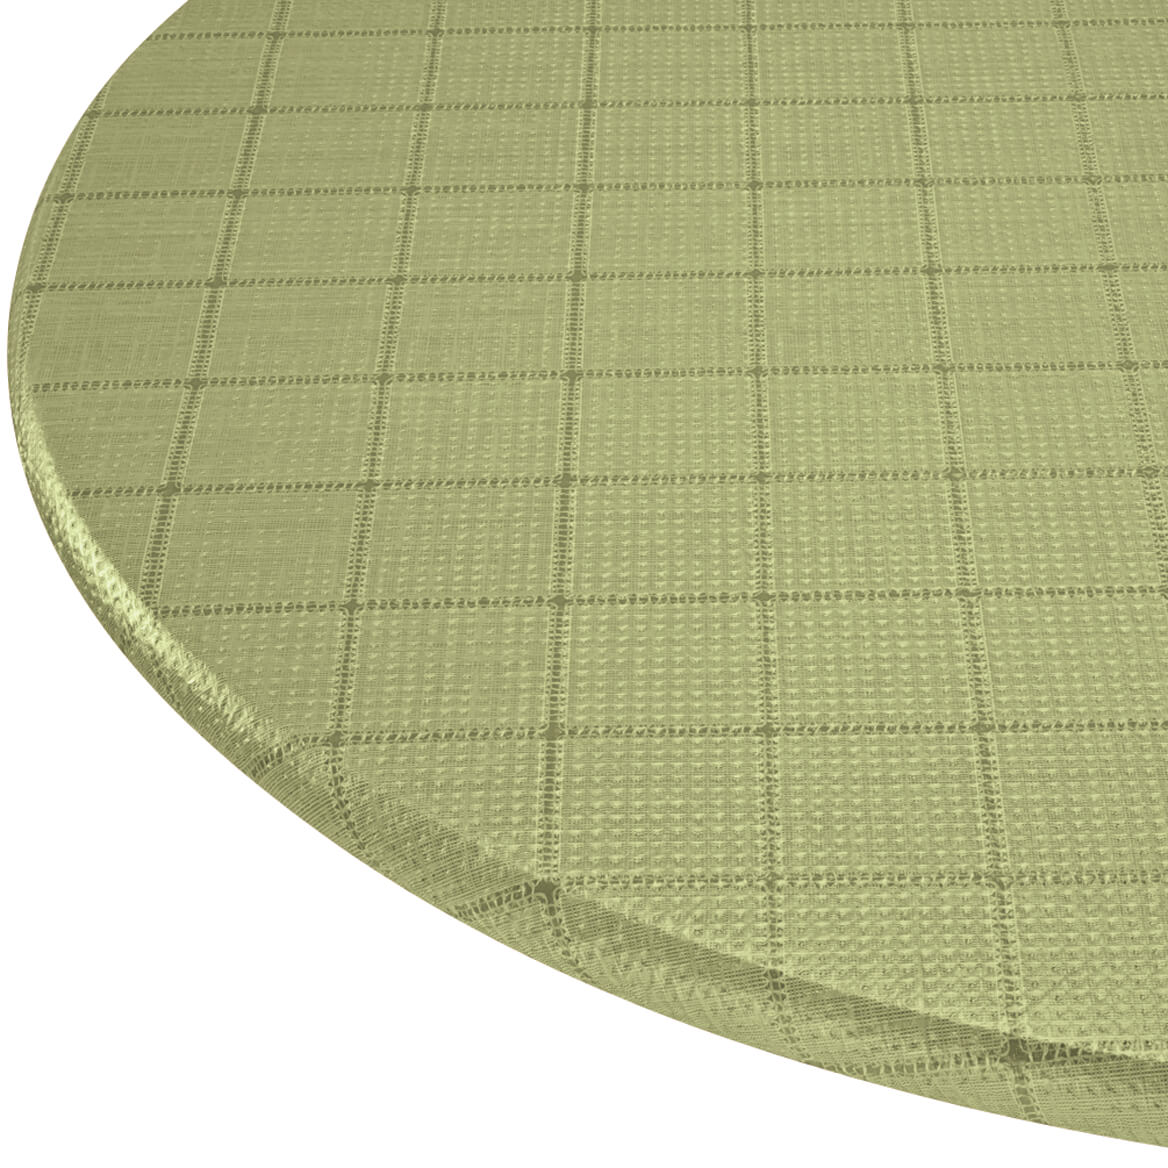 Woven Lattice Vinyl Elasticized Table Cover